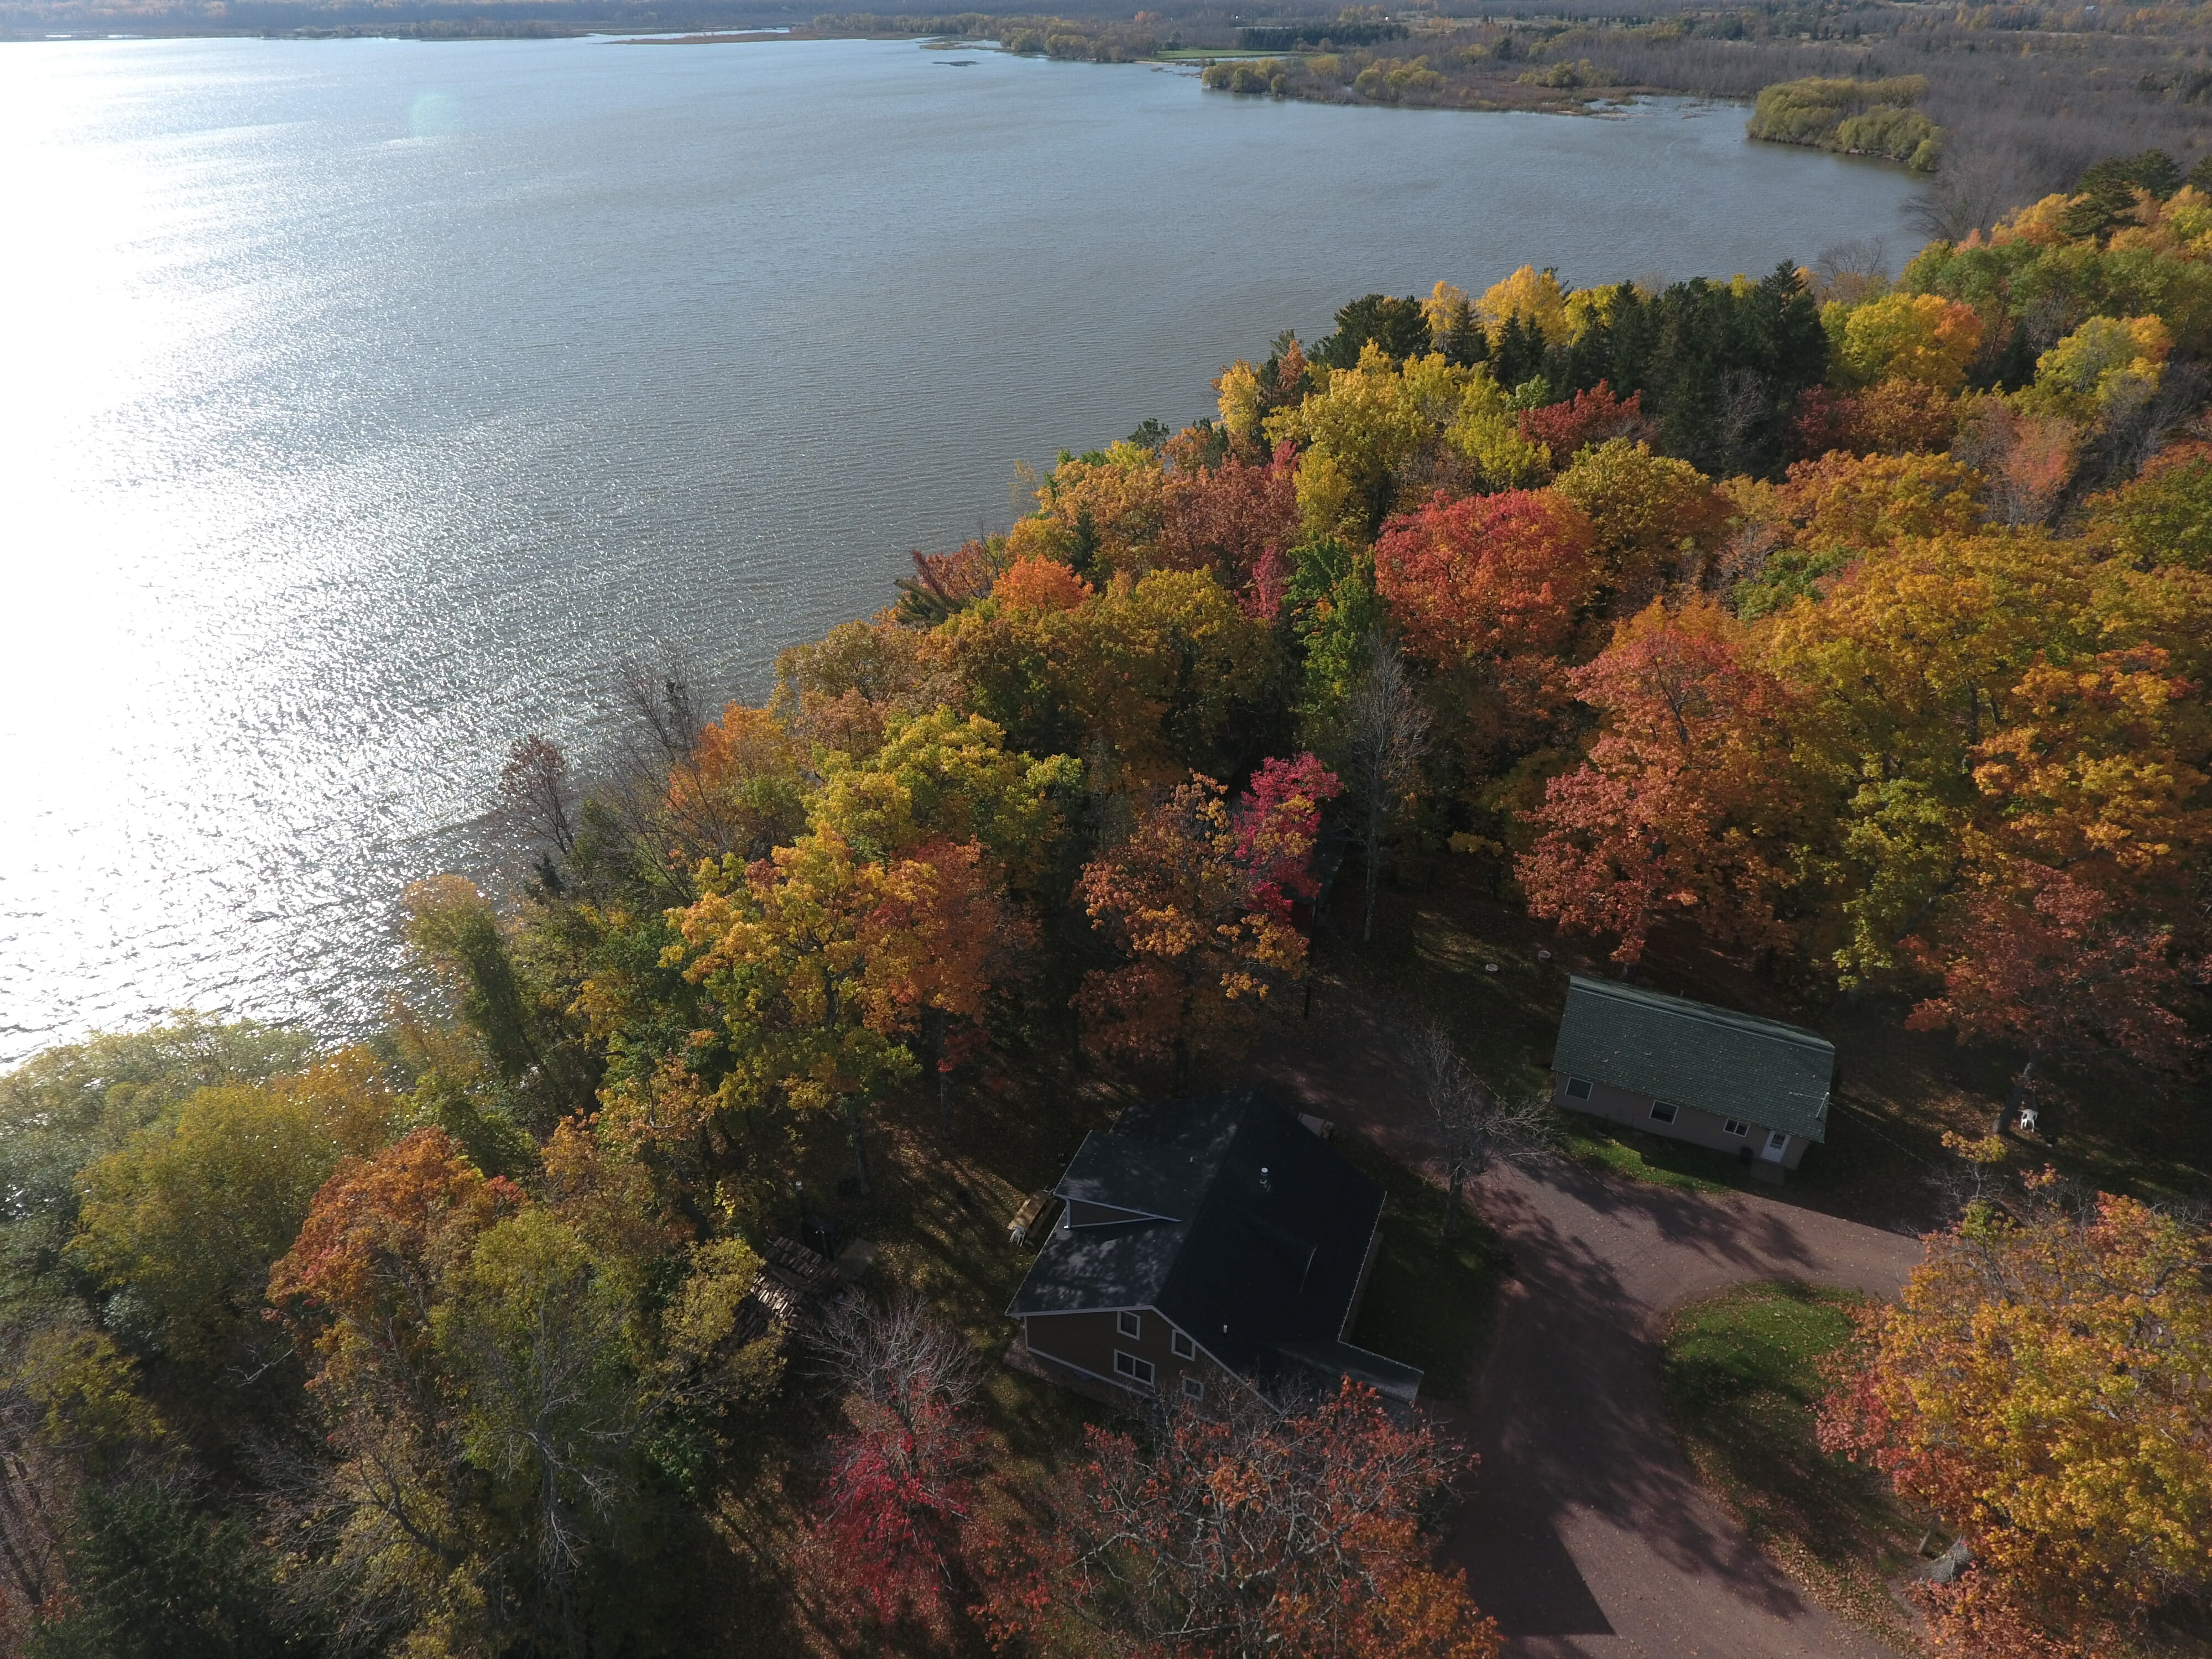 Aerial View on Mission Springs Resort on Lake Superior in Ashland Wisconsin.